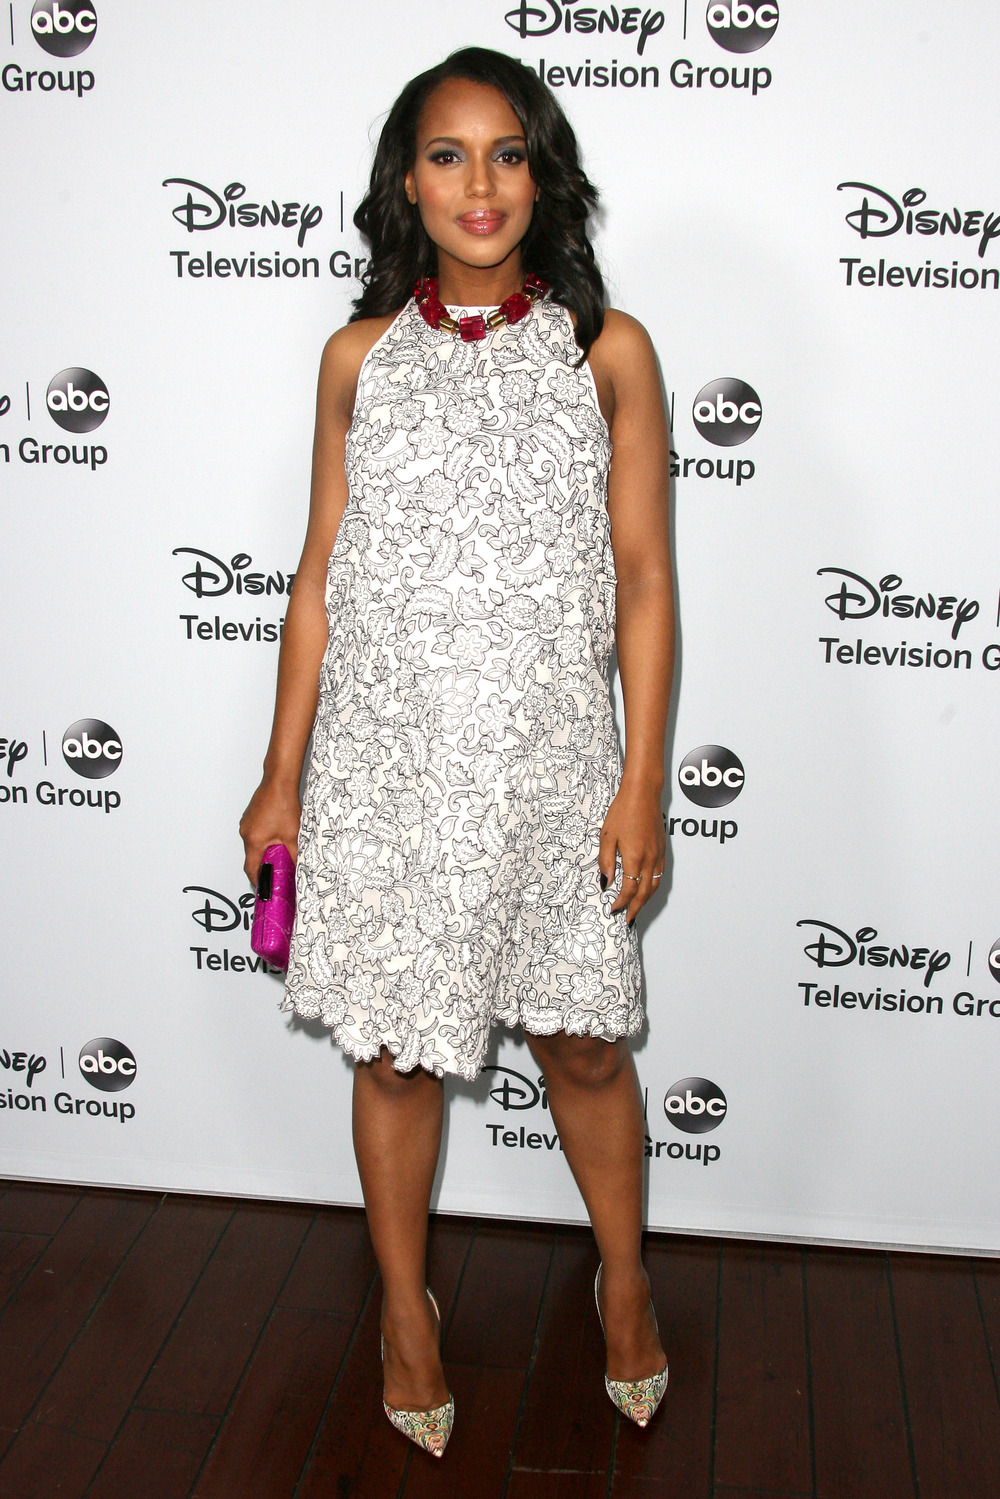 Kerry Washington to Make First Post-Baby TV Appearance at BET Awards!